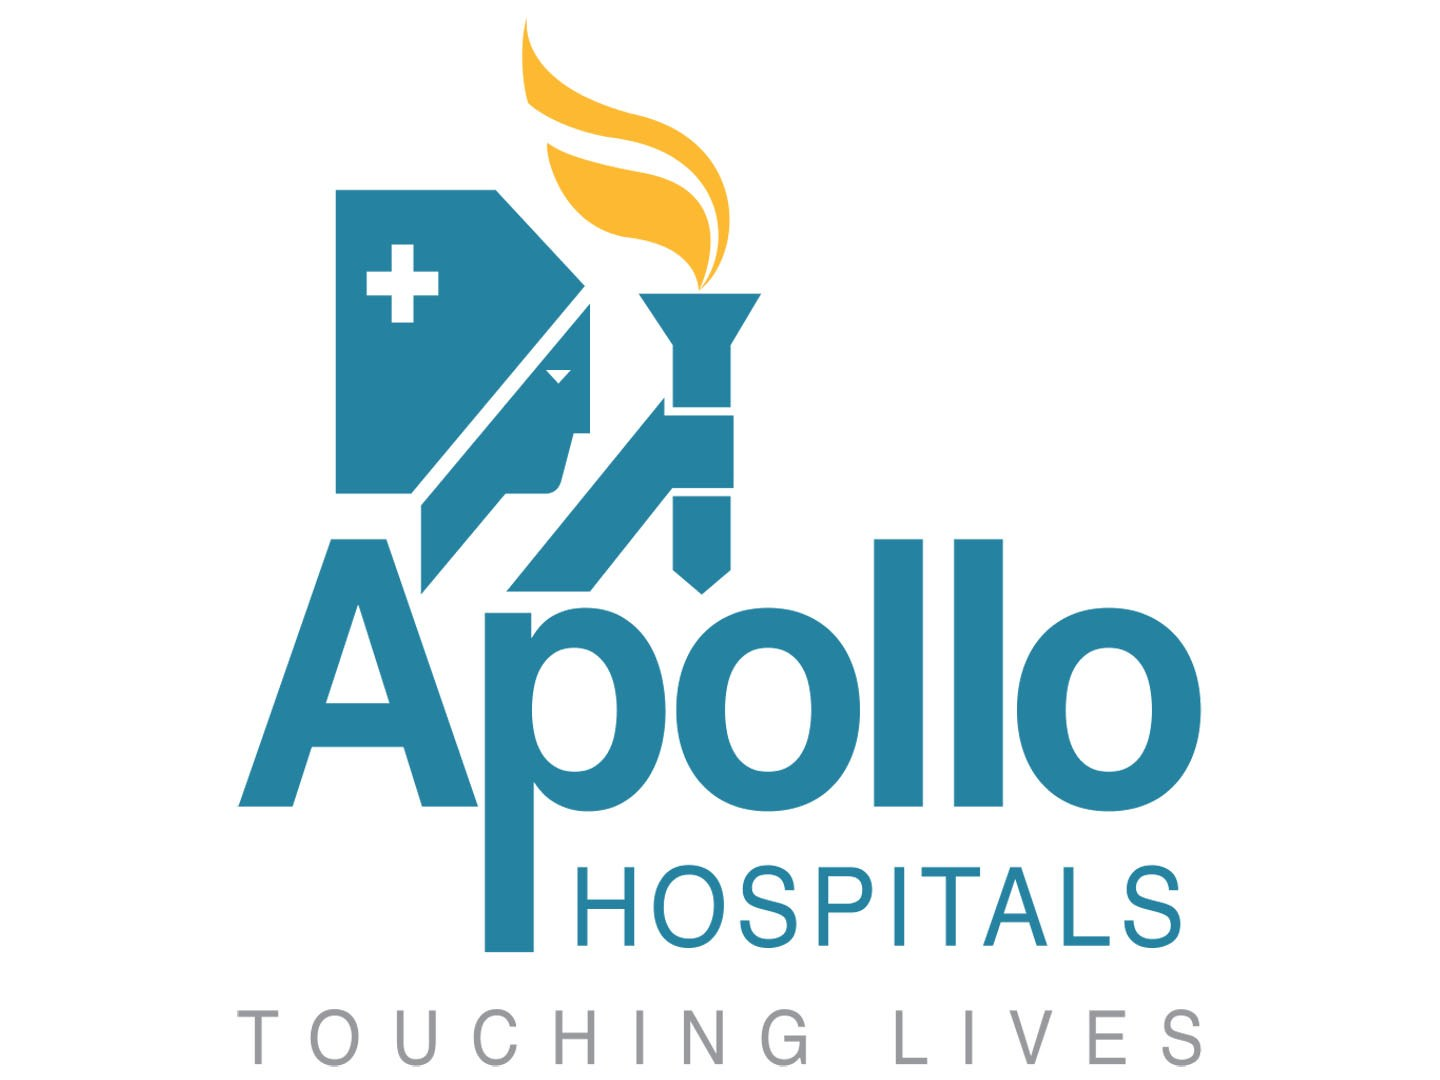 Apollo Hospitals – My take